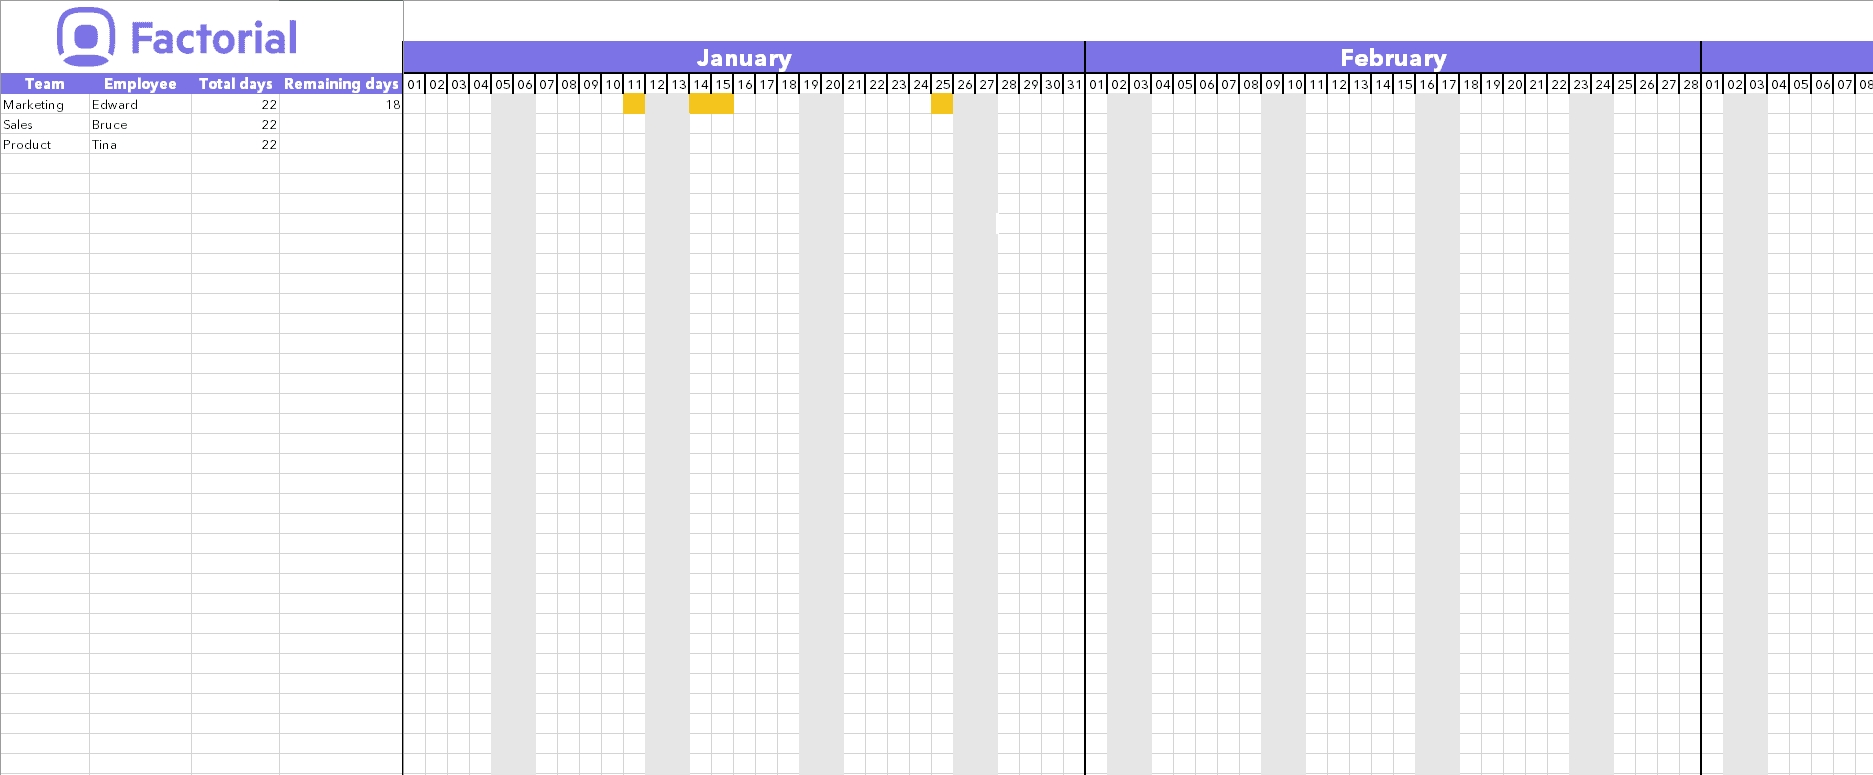 Manage Time Off Requests W/ Free Template | Factorial-Employee Vacation Calendar Template